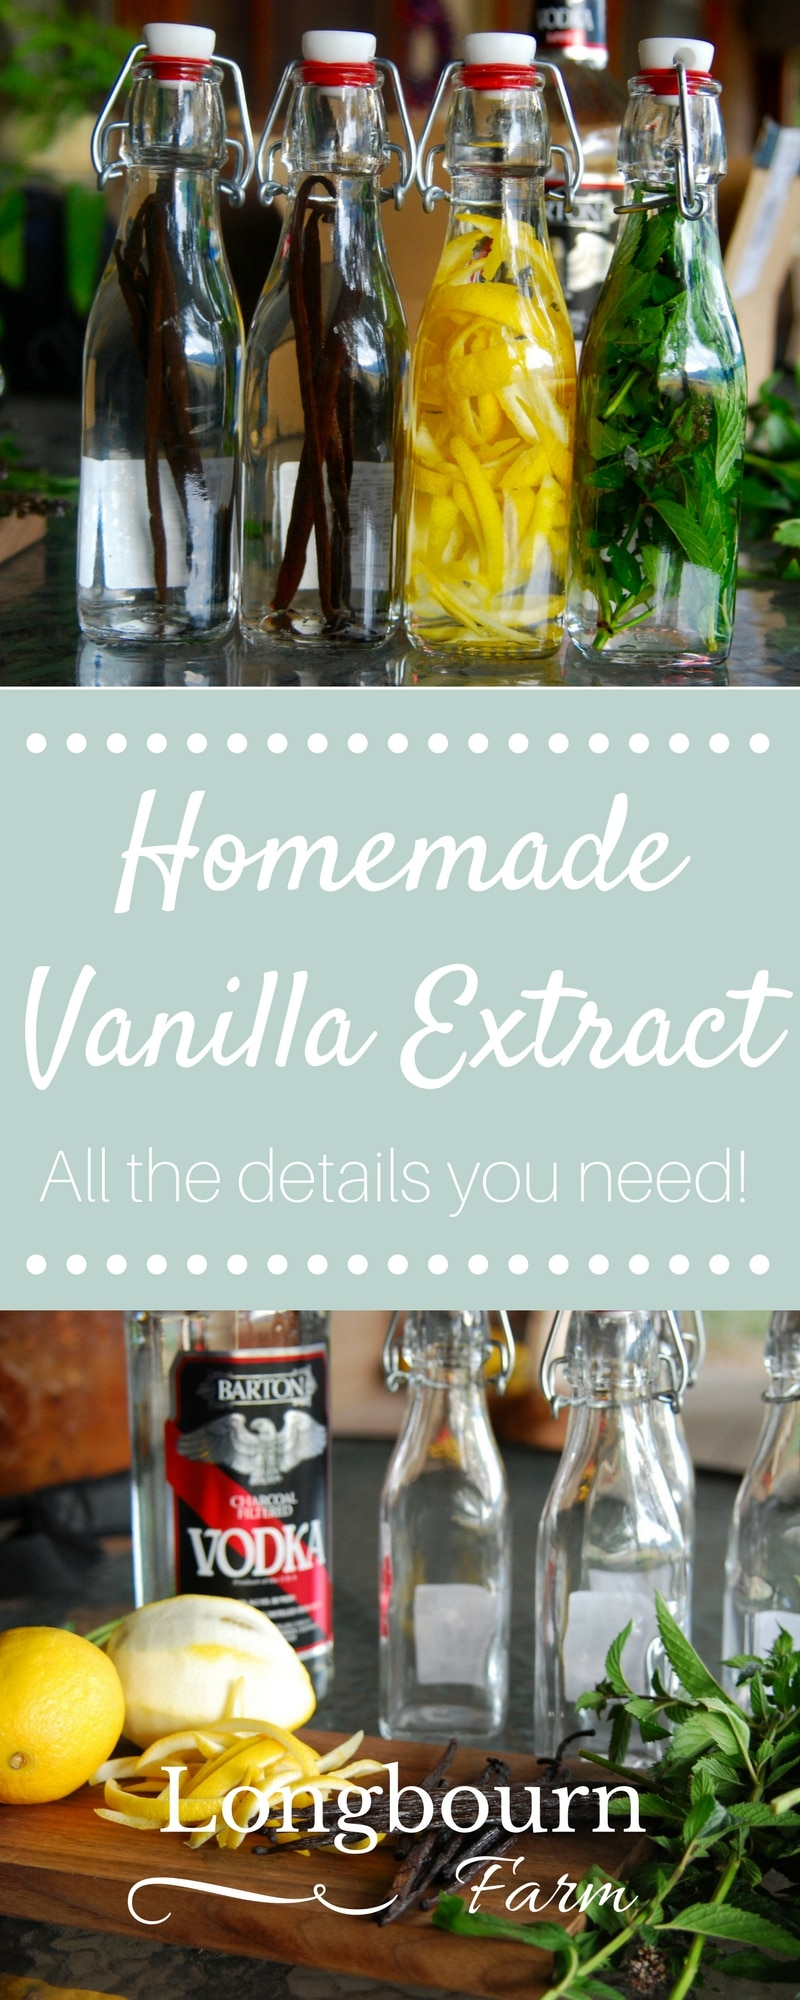 All the details on making homemade vanilla extract. Also, learn how to make mint extract and lemon extract as well! Get the details on what to use! via @longbournfarm